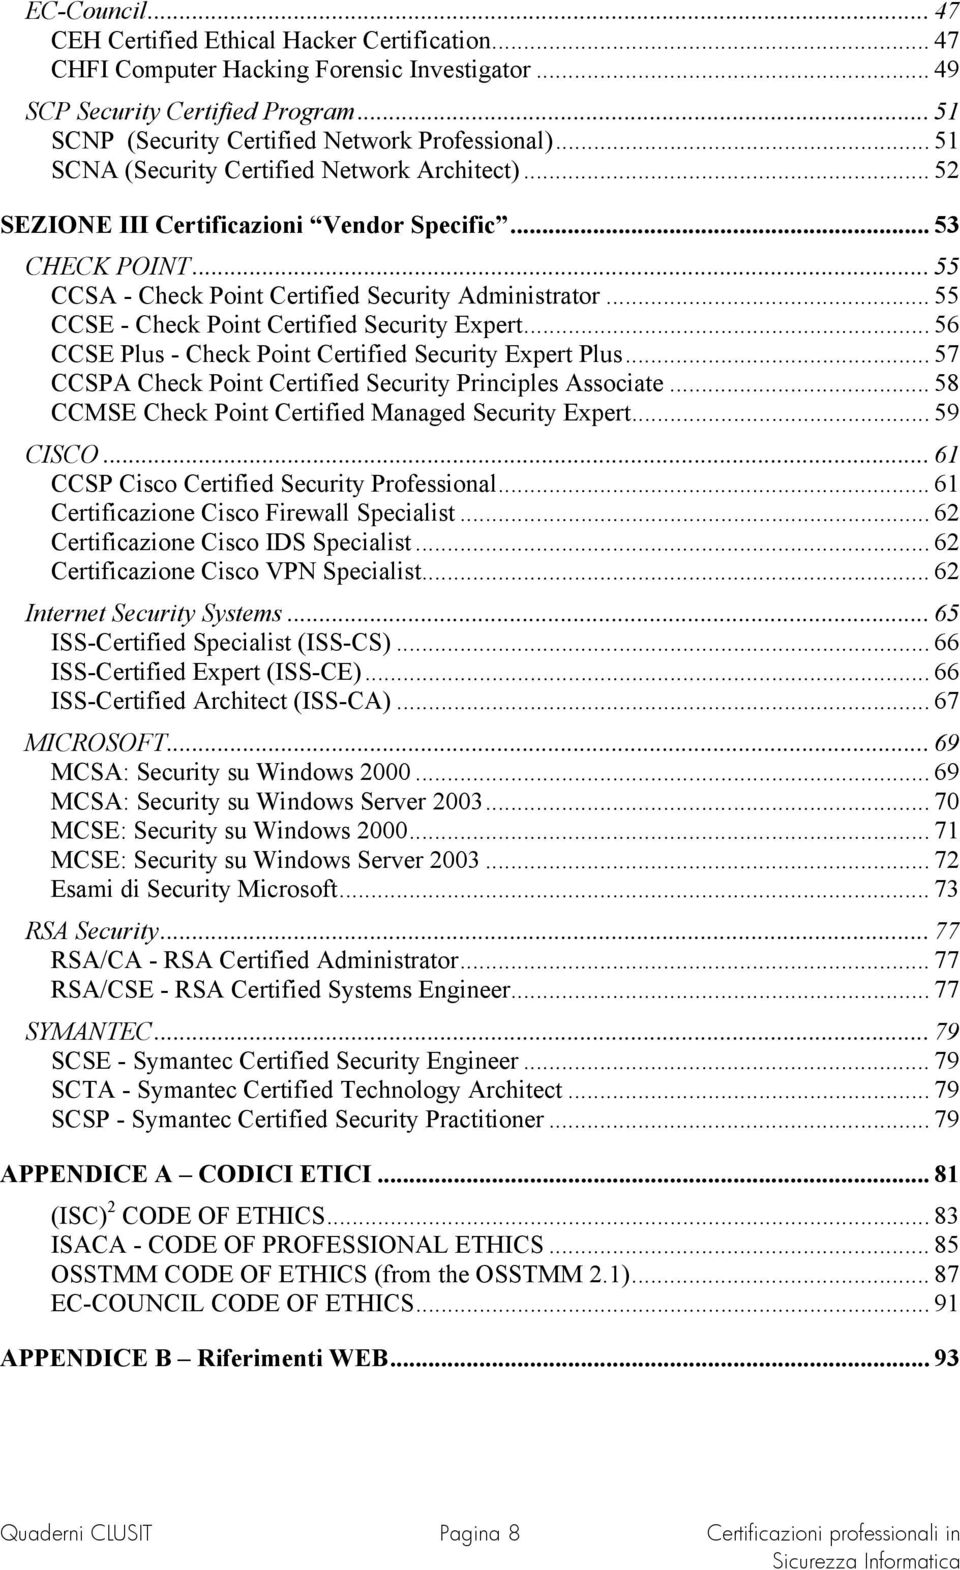 .. 55 CCSE - Check Point Certified Security Expert... 56 CCSE Plus - Check Point Certified Security Expert Plus... 57 CCSPA Check Point Certified Security Principles Associate.